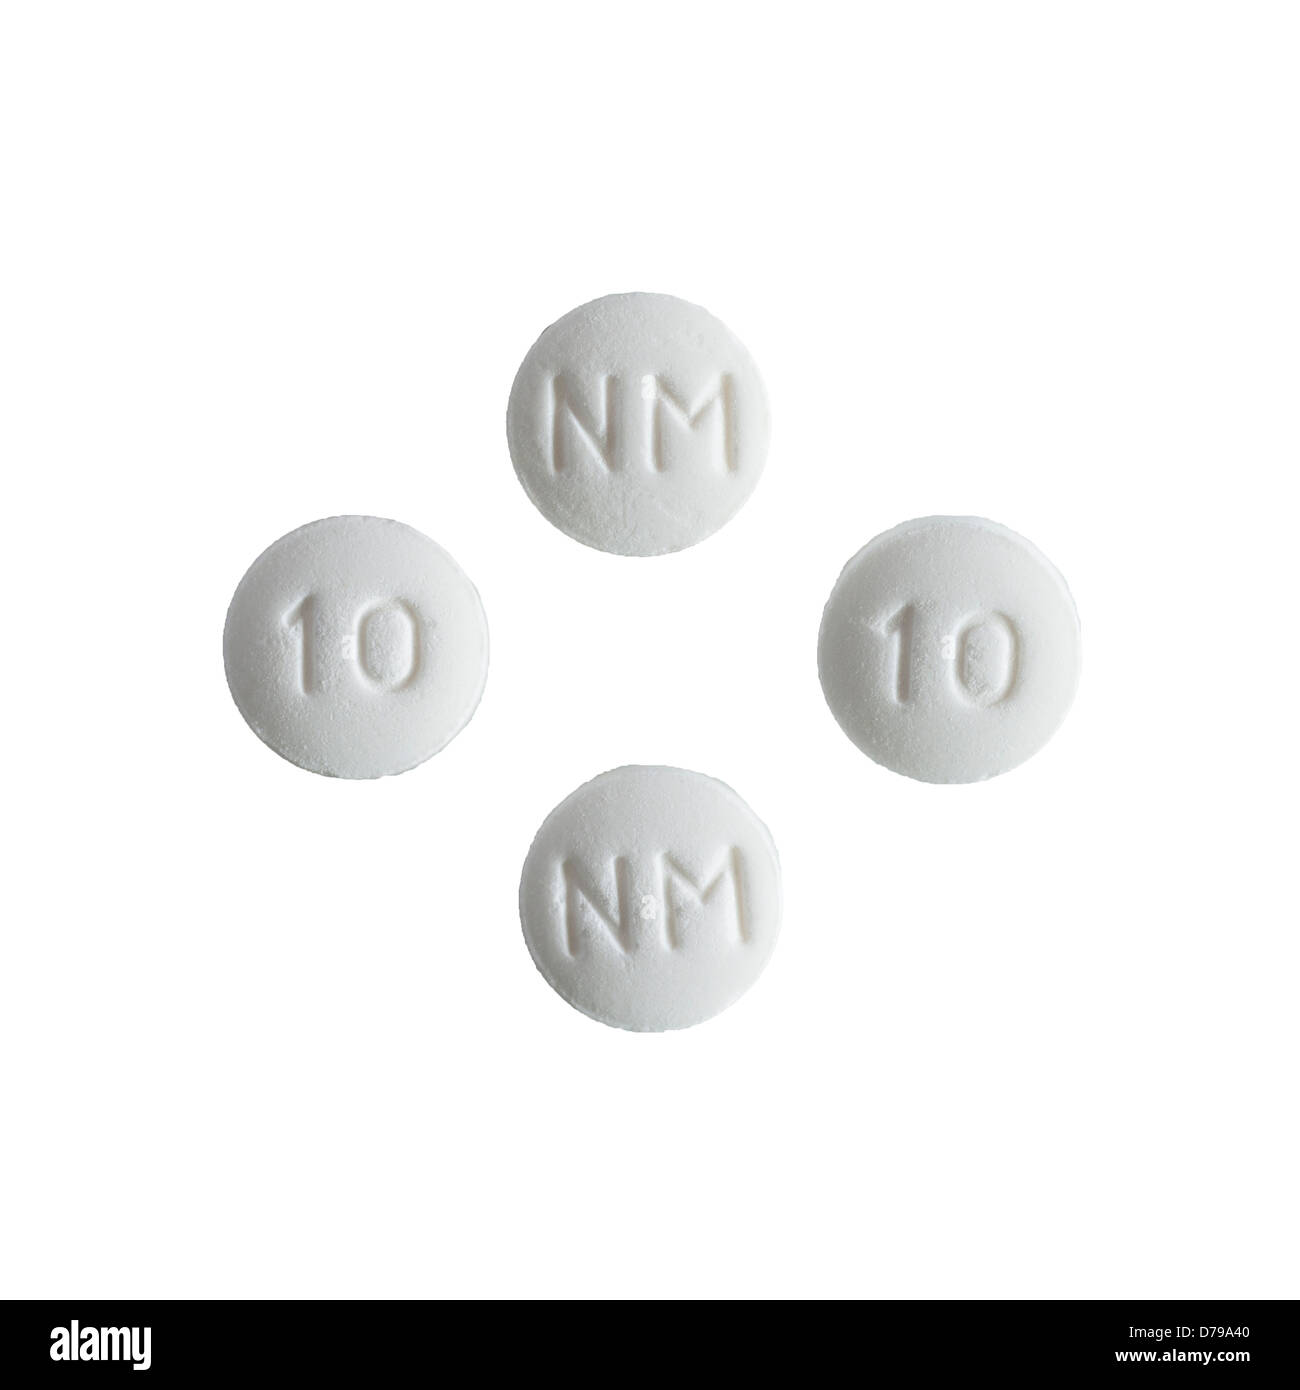 Nortriptyline tablets on a white background - Stock Image